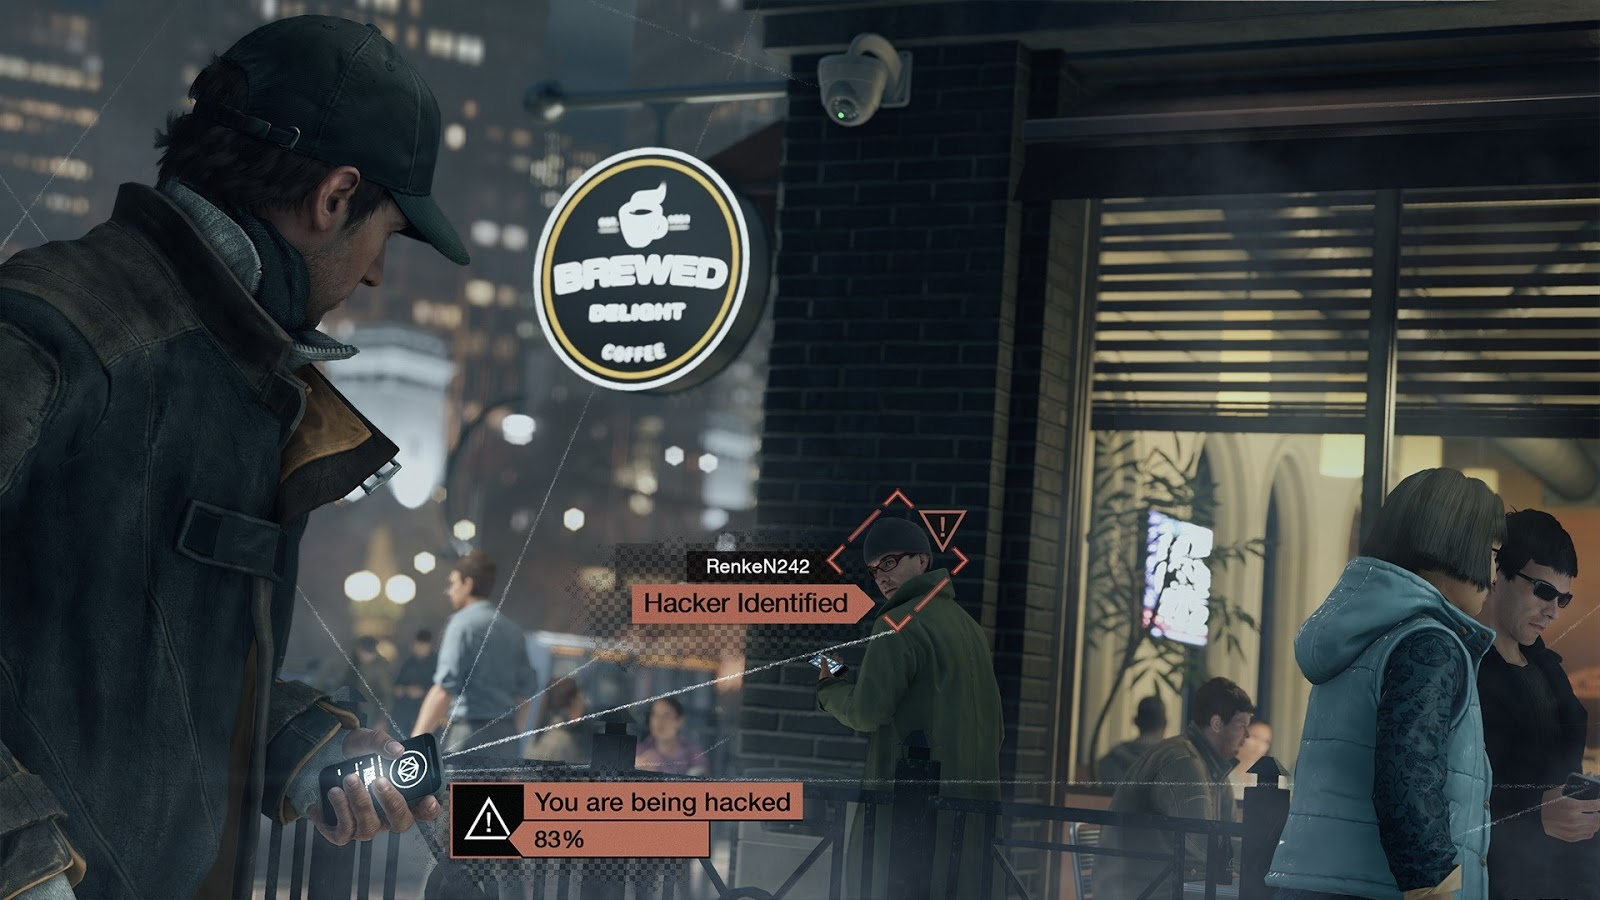 New Watch Dogs Ps4 Full Hd 1080p Direct Feed Gameplay Footage Leaked